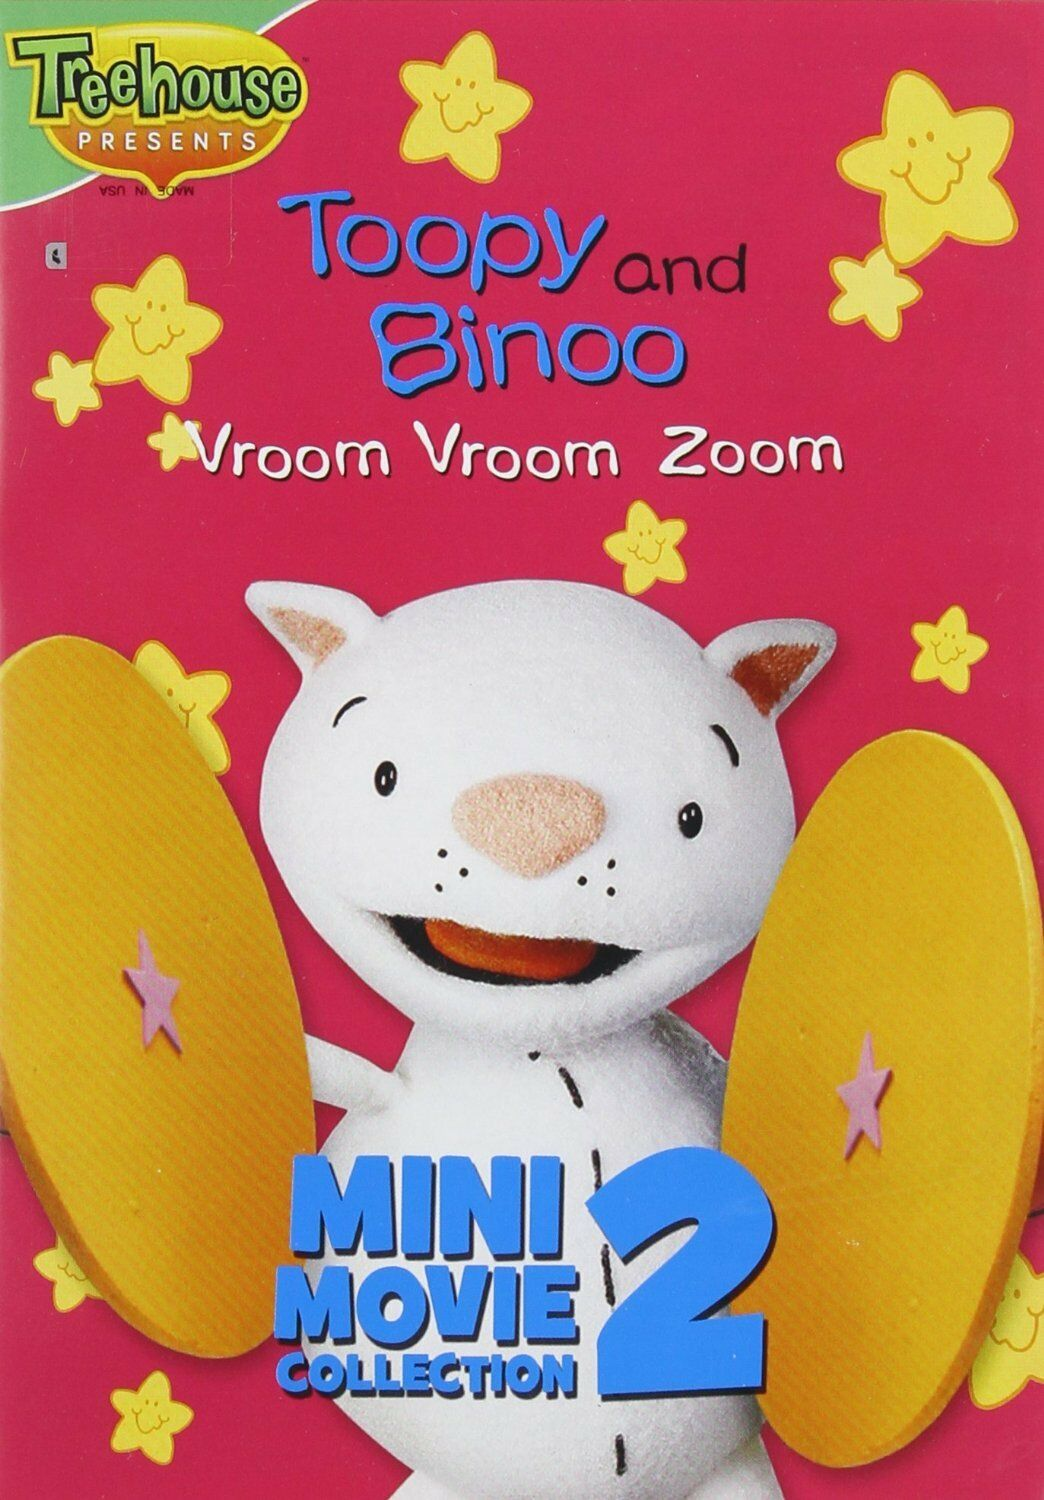 toopy and binoo vroom vroom zoom mini movie collection 2 dvd 2014